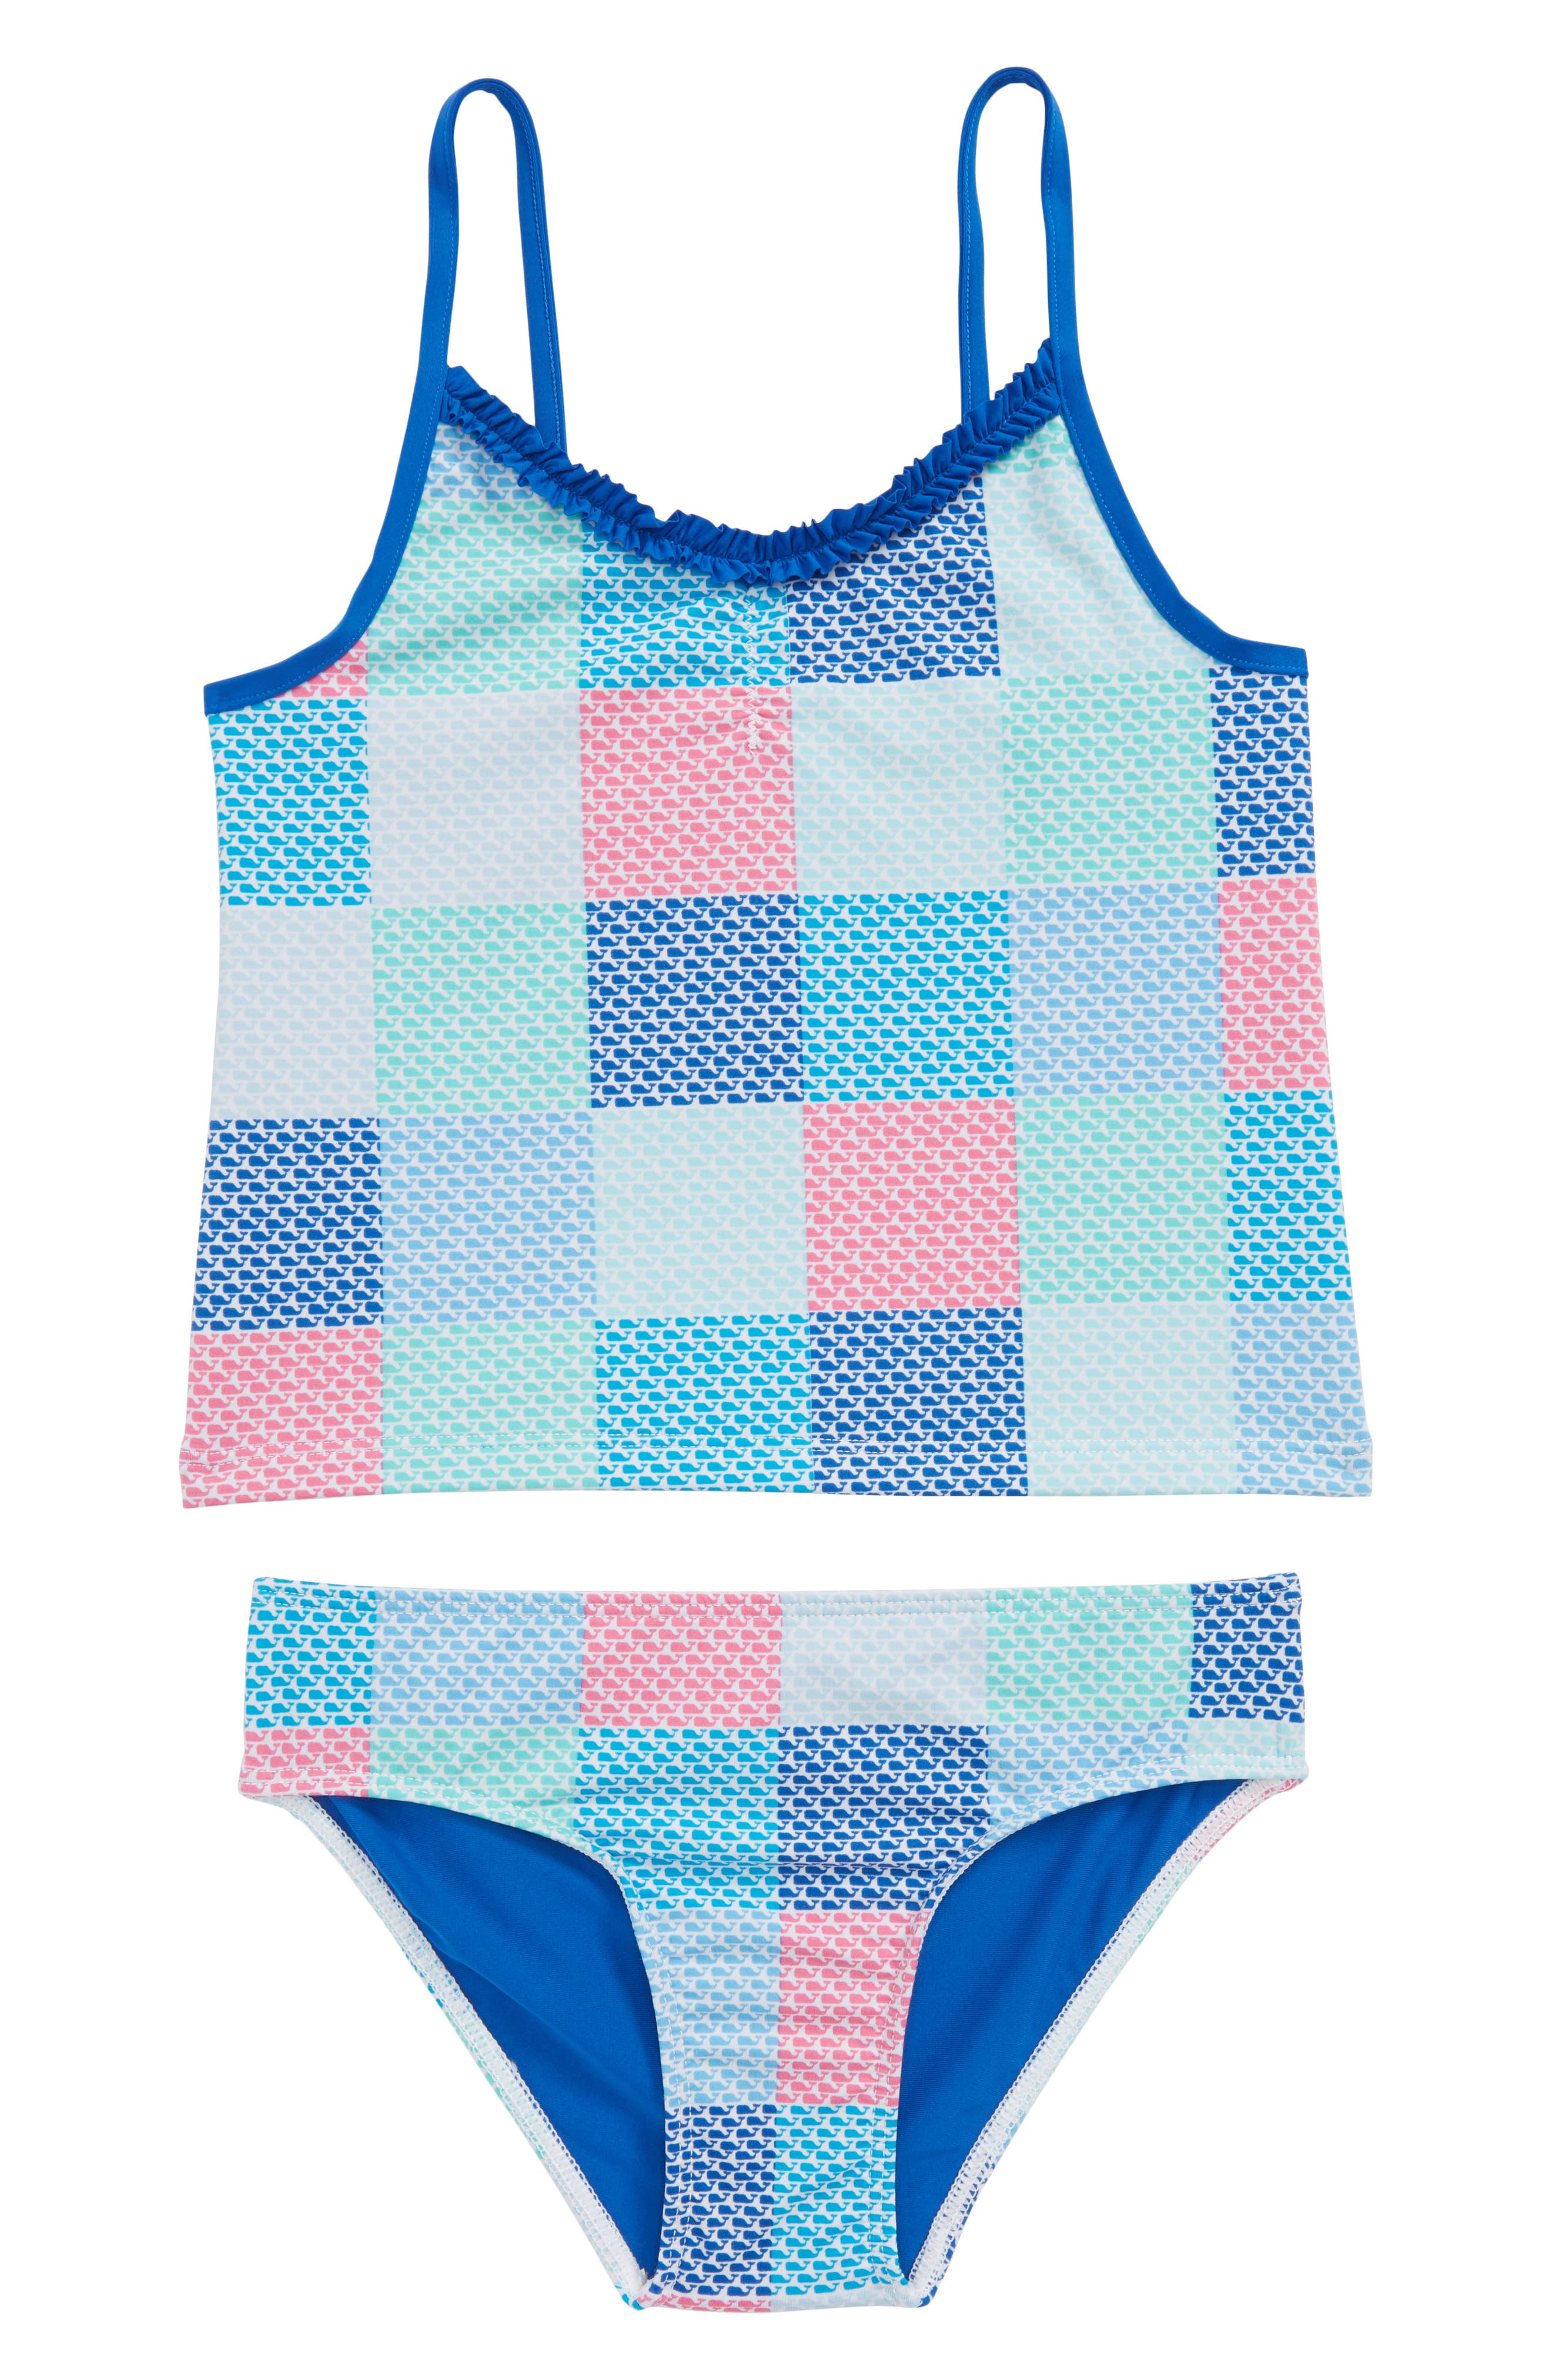 Patchwork Whale Two-Piece Tankini Swimsuit,                             Main thumbnail 1, color,                             Cool Breeze